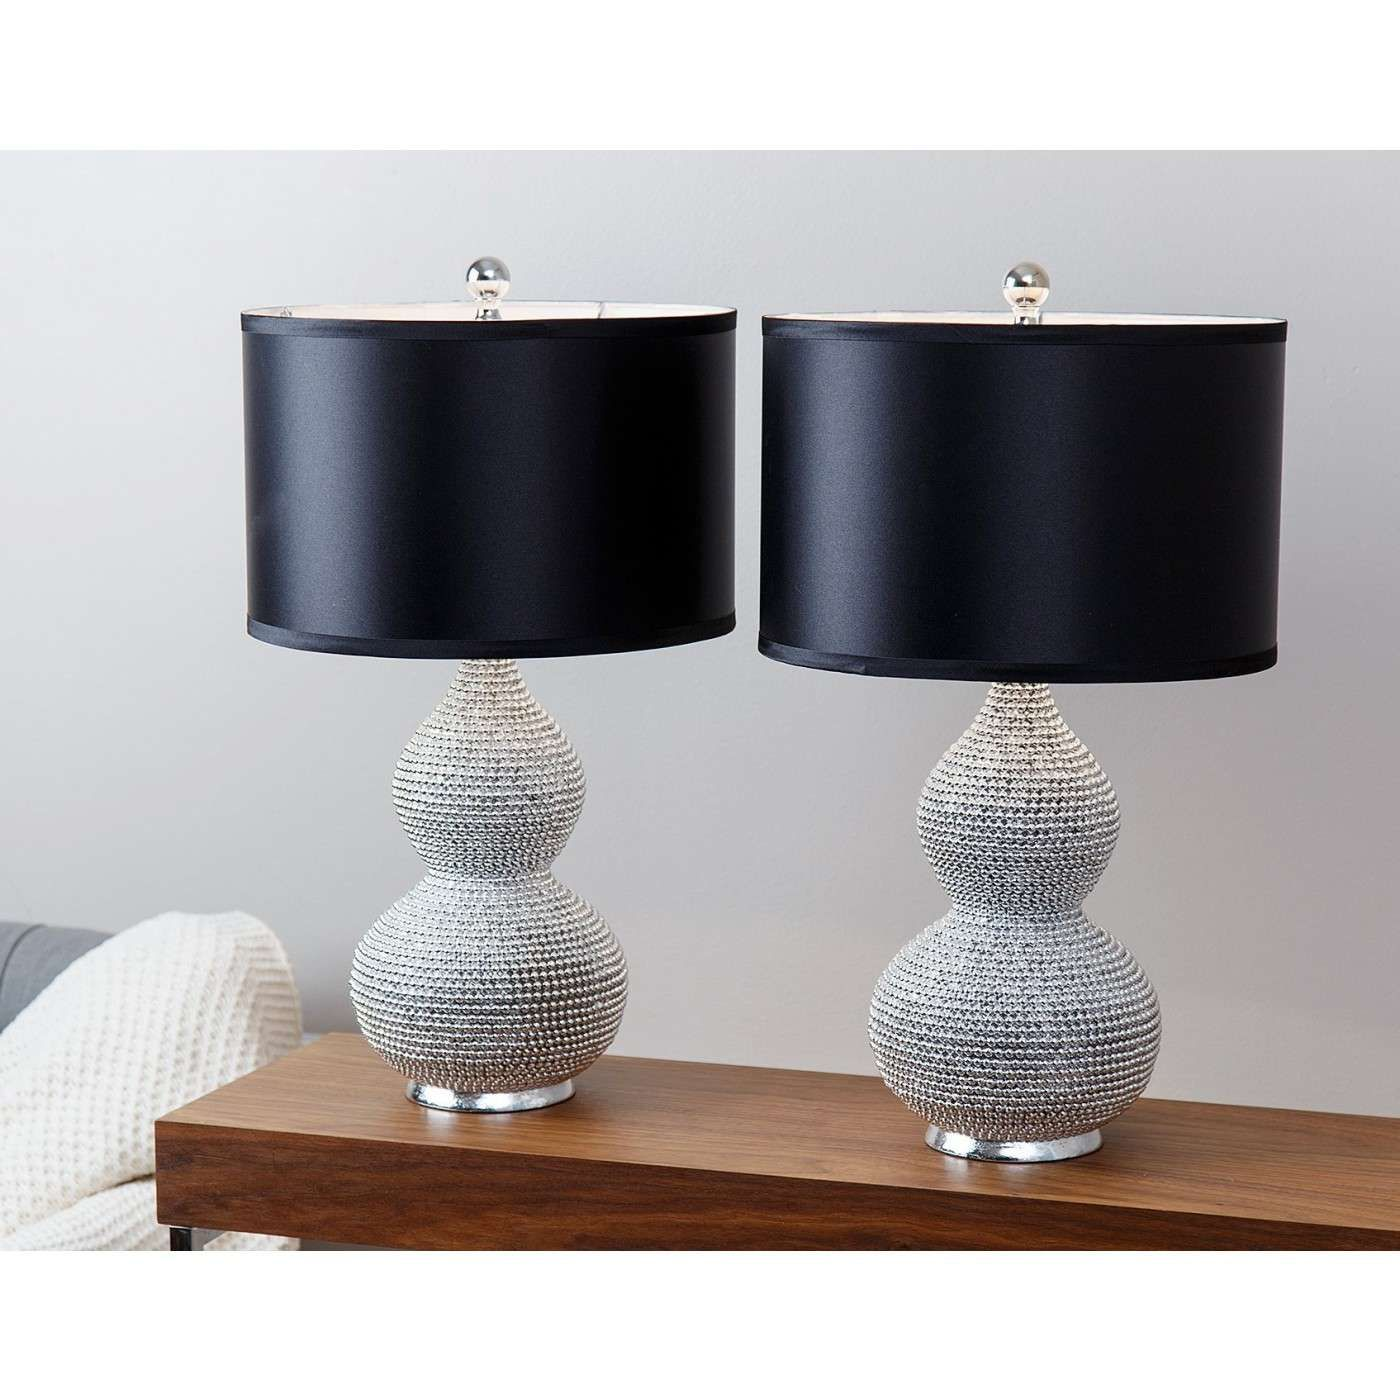 Sayer Silver Plated Sea Urchin Table Lamp Set Of 2